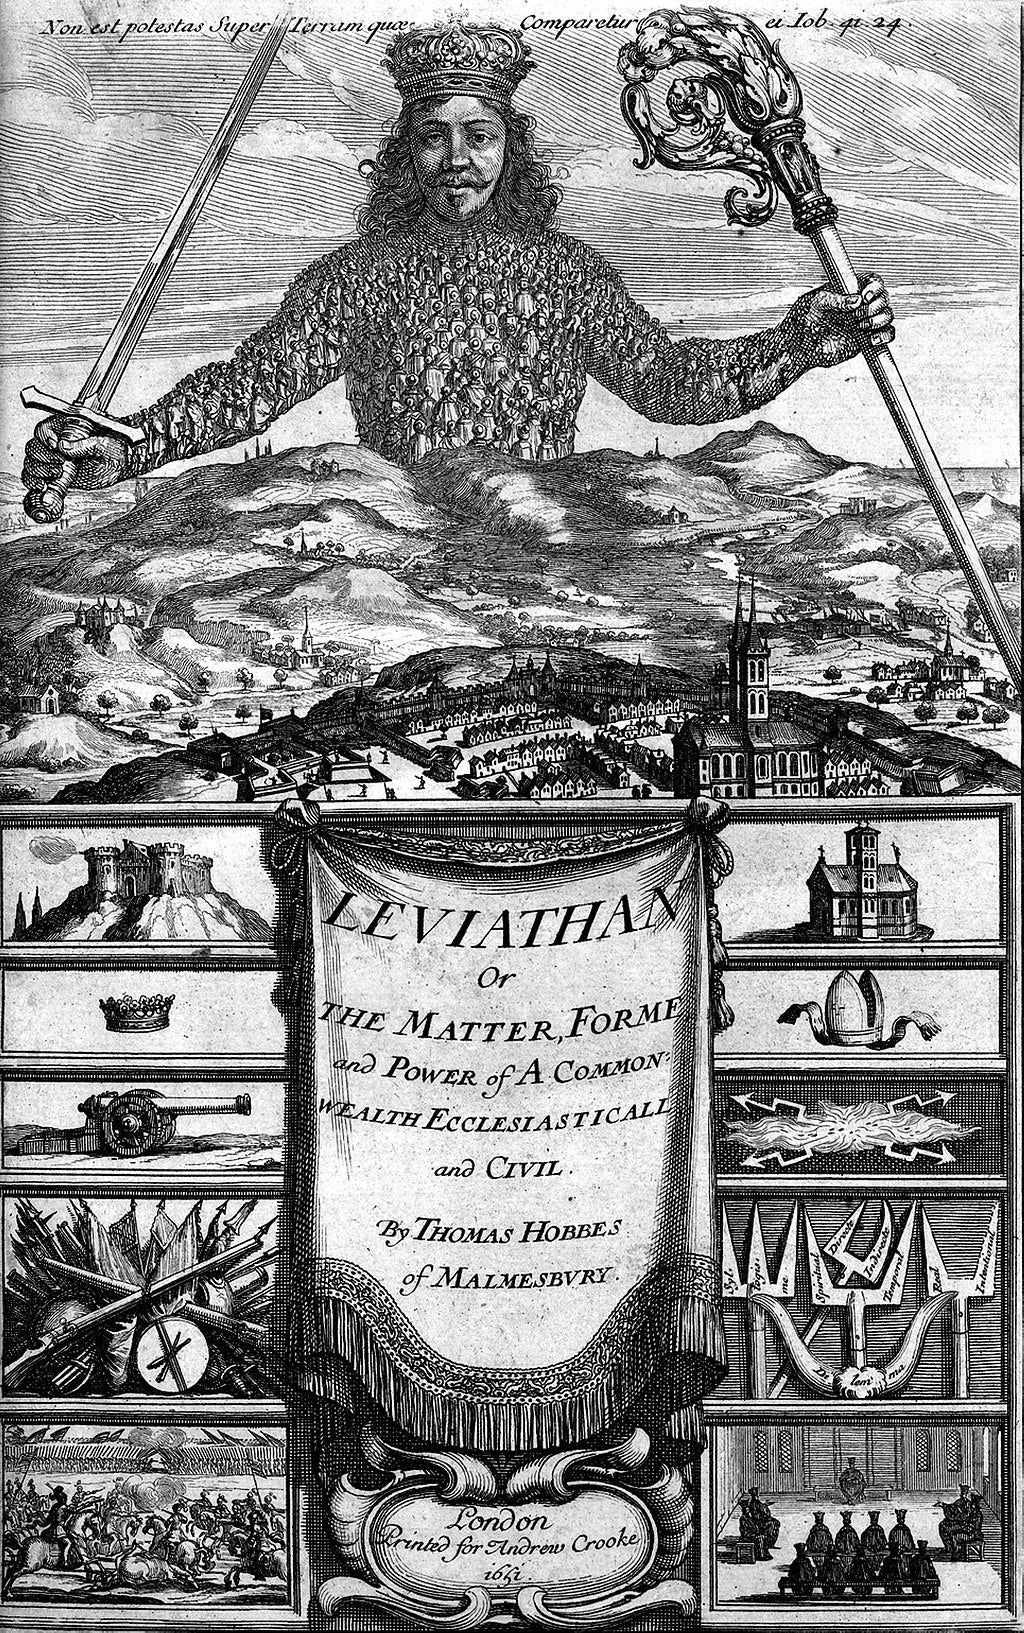 Leviathan pamphlet by Thomas Hobbes